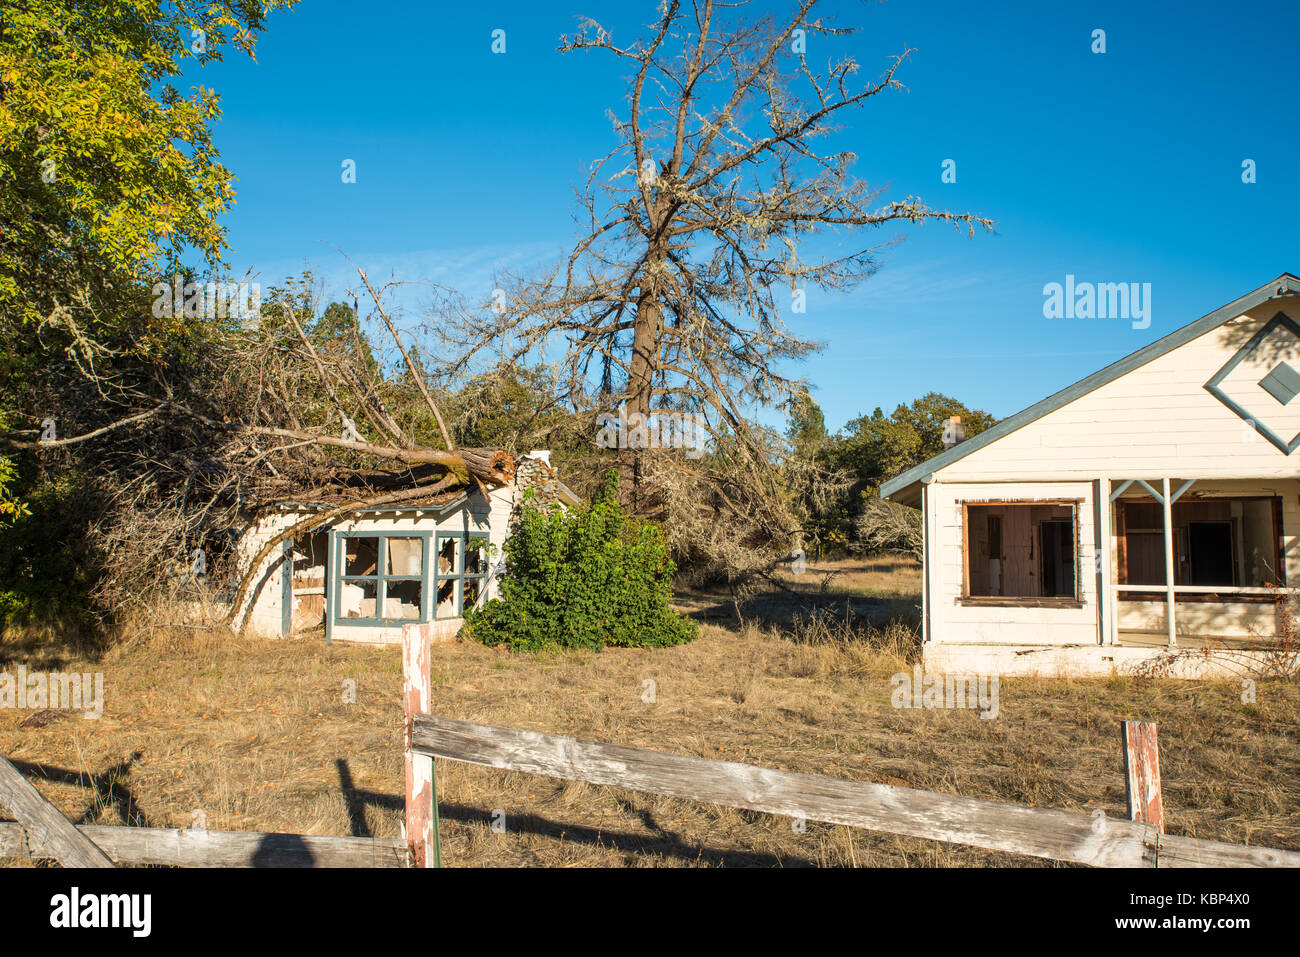 House Without Windows Tree Without Leaves-Two old houses near the Grave Creek Covered Bridge sit forlornly, windows - Stock Image